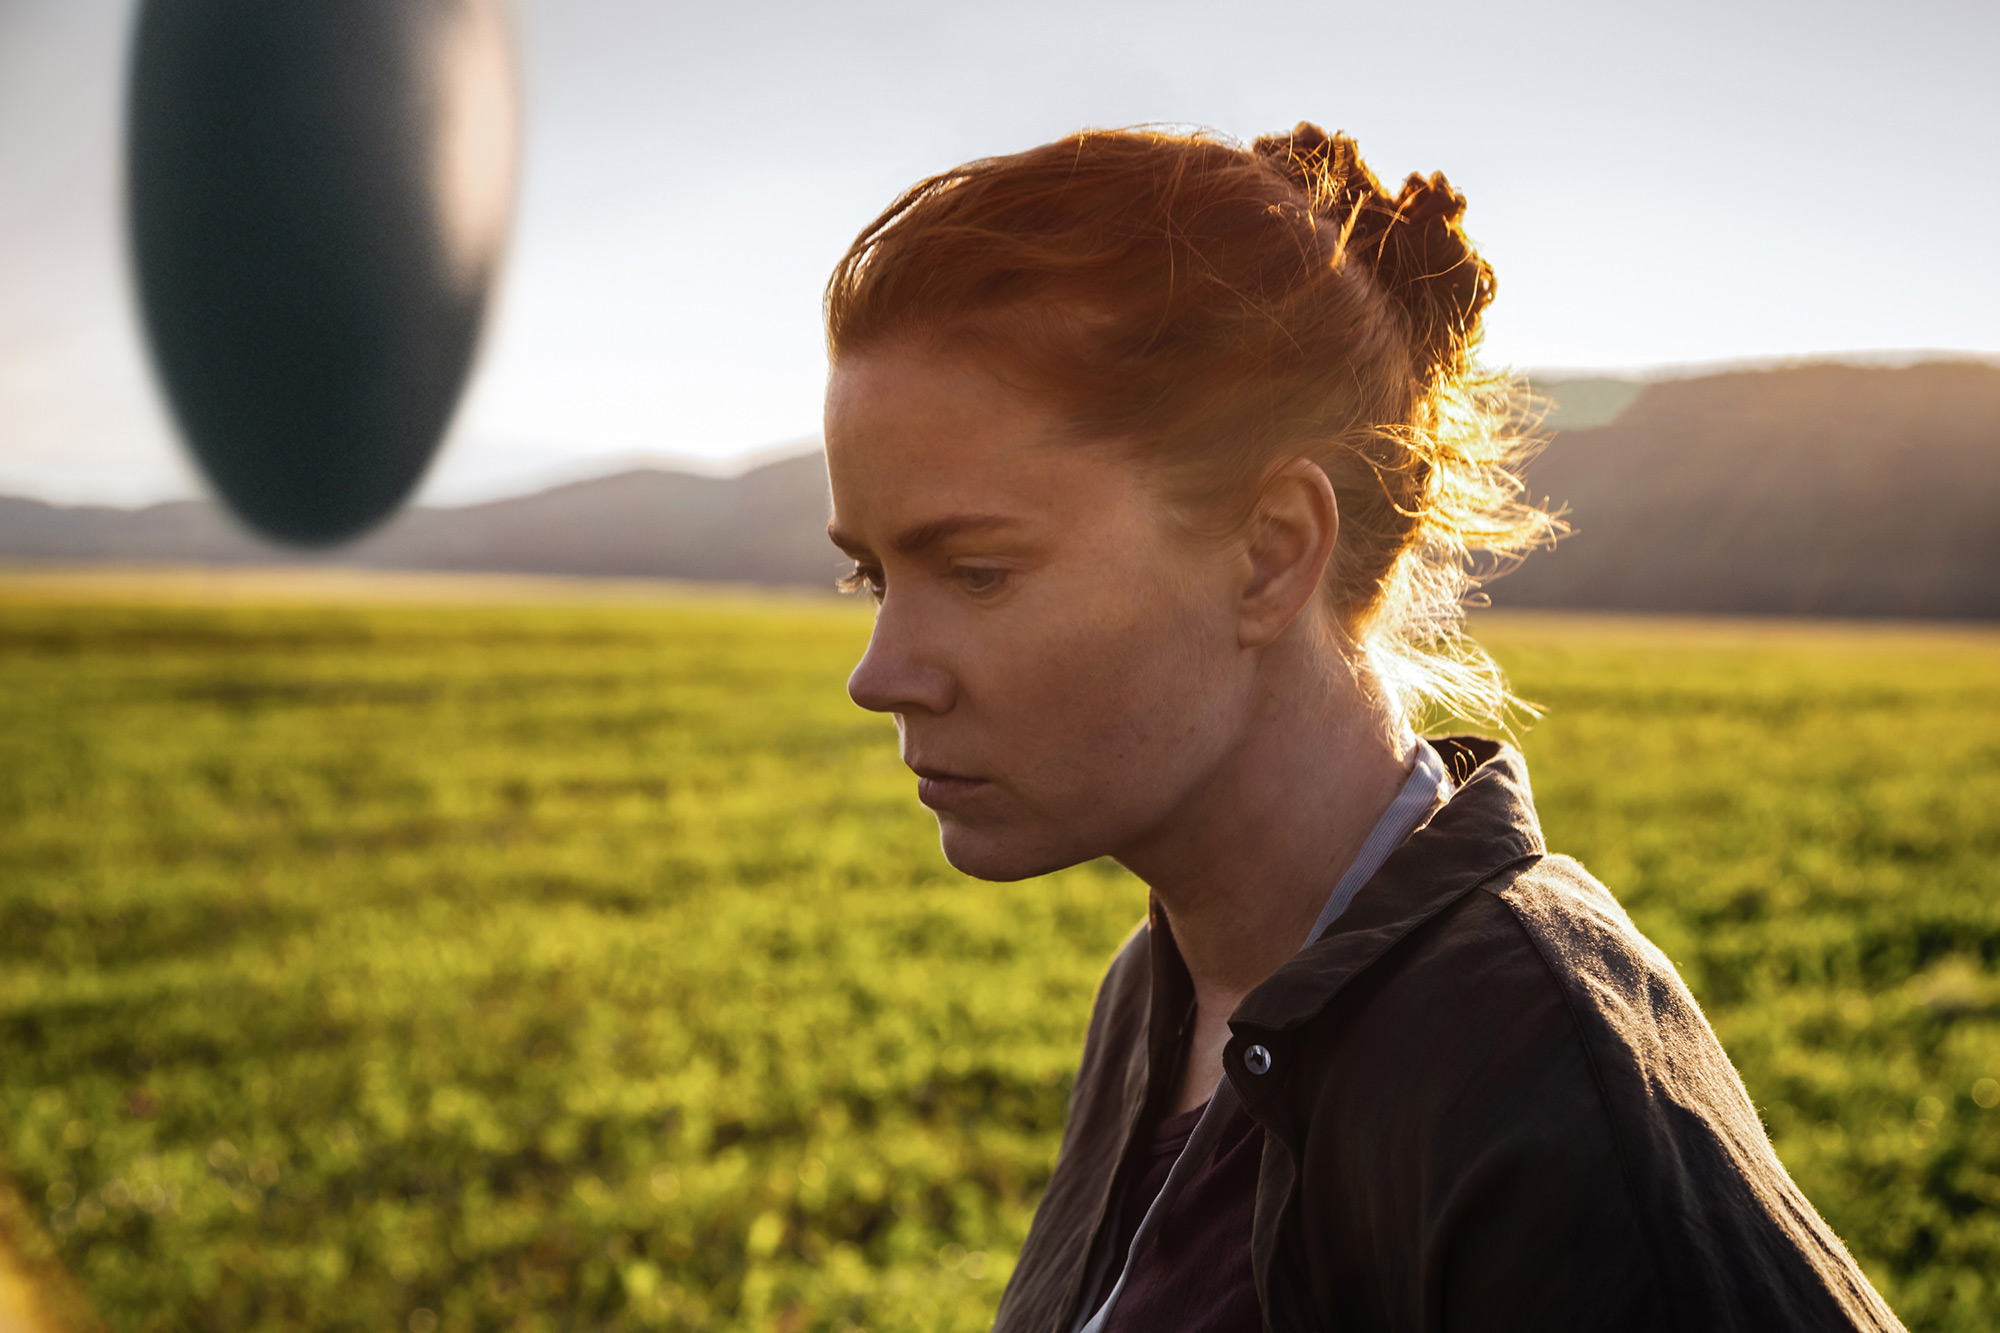 Toronto Film Review: Denis Villeneuve's Arrival